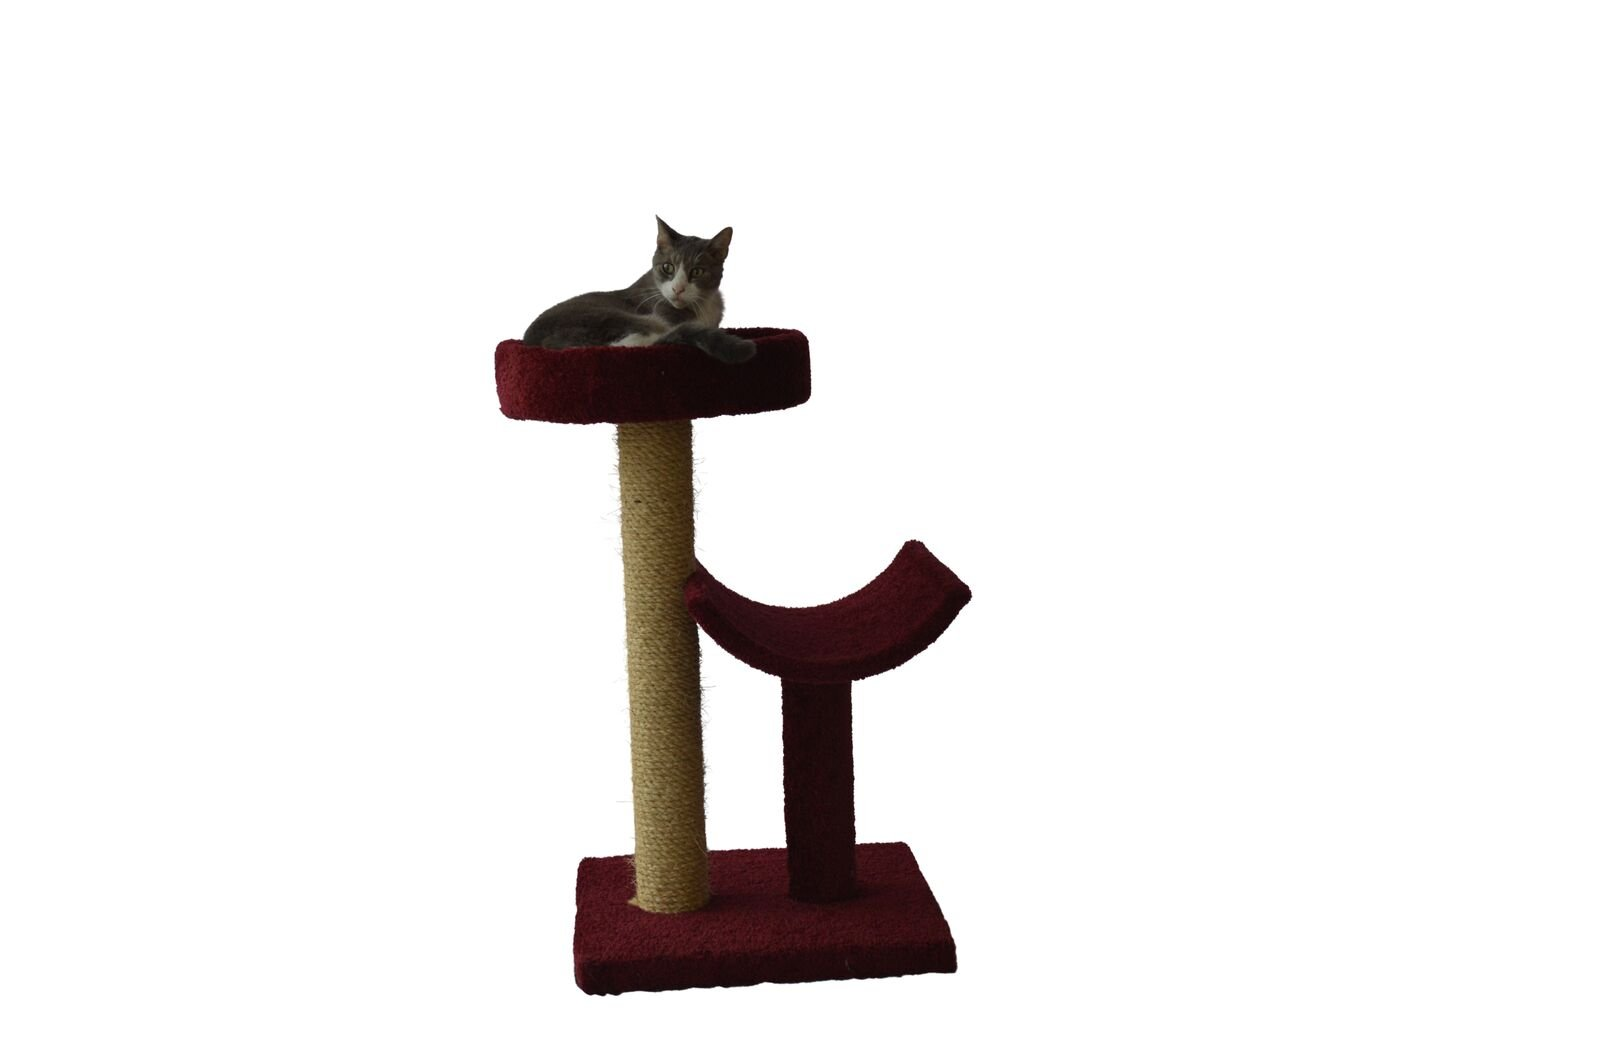 Molly and Friends MF-23-burg Two-Tier Scratching Post Furniture, Burgundy by Molly and Friends